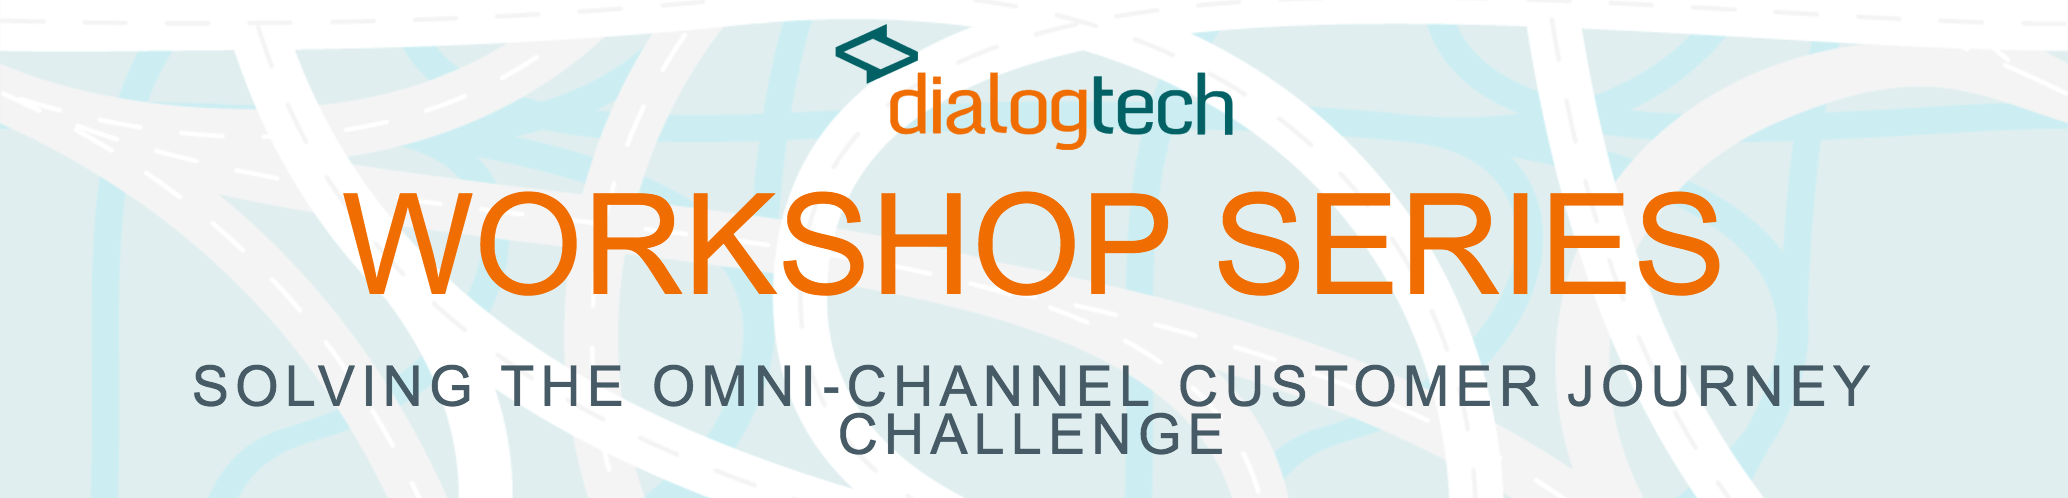 DialogTech Workshop: Solving the Omni-Channel Customer Journey Challenge